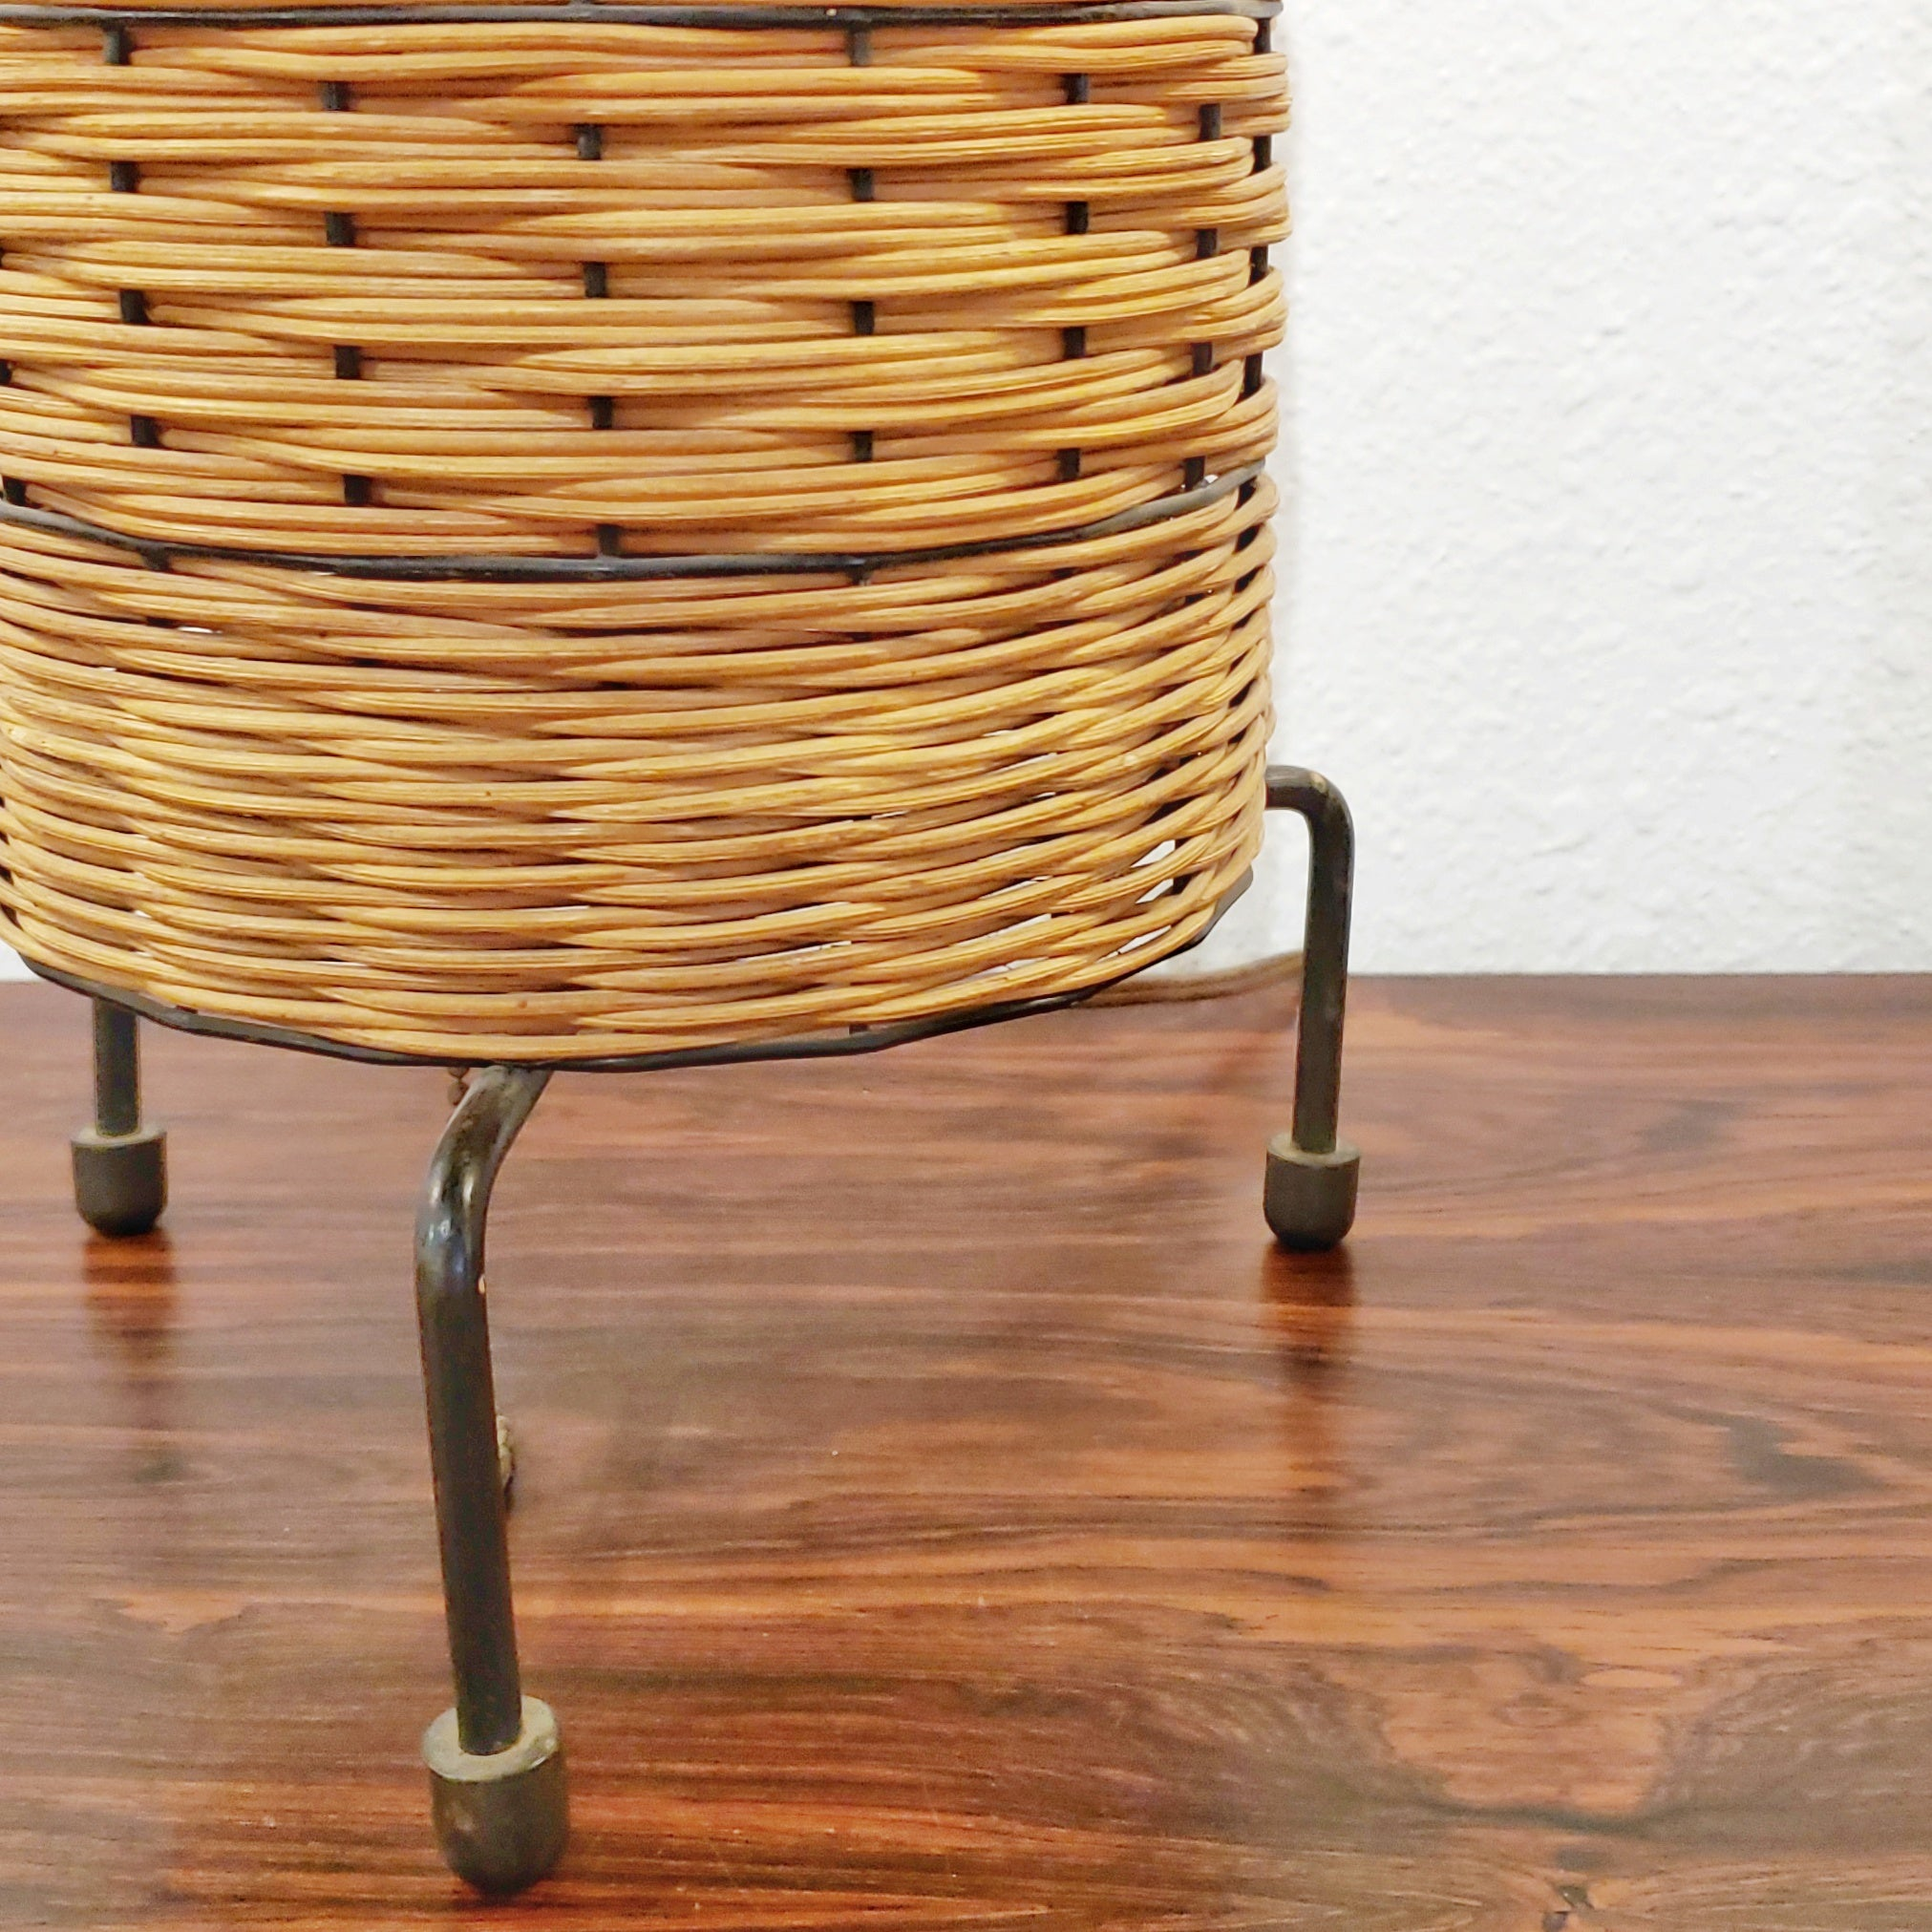 WICKER AND WIRE ACCENT LAMP IN THE STYLE OF PAUL MAYÉN